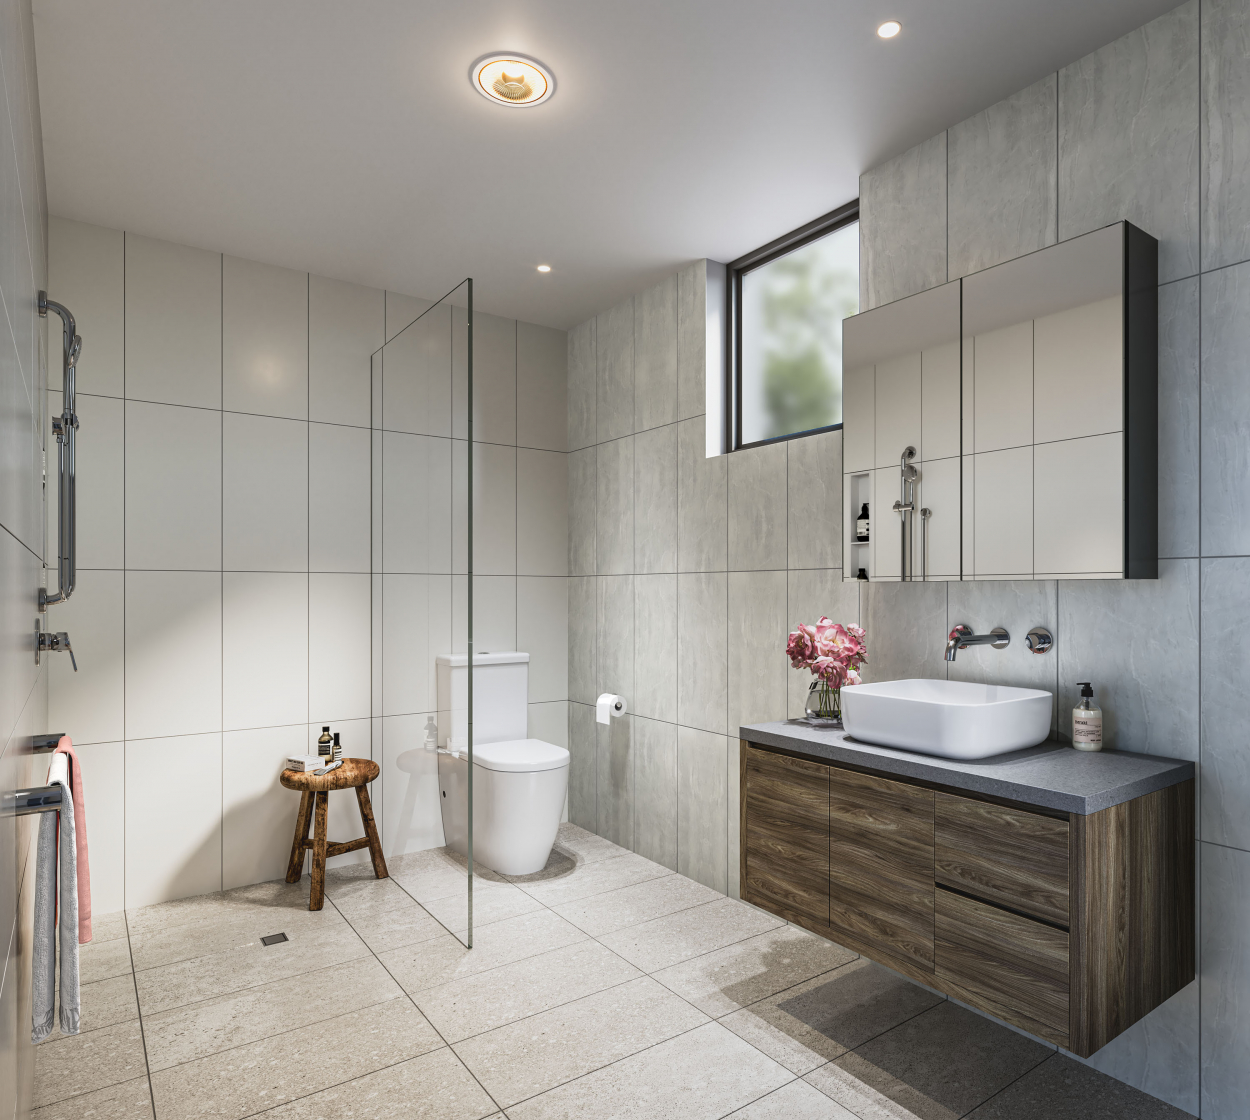 North-facing 2-bedroom bathed in sunlight!